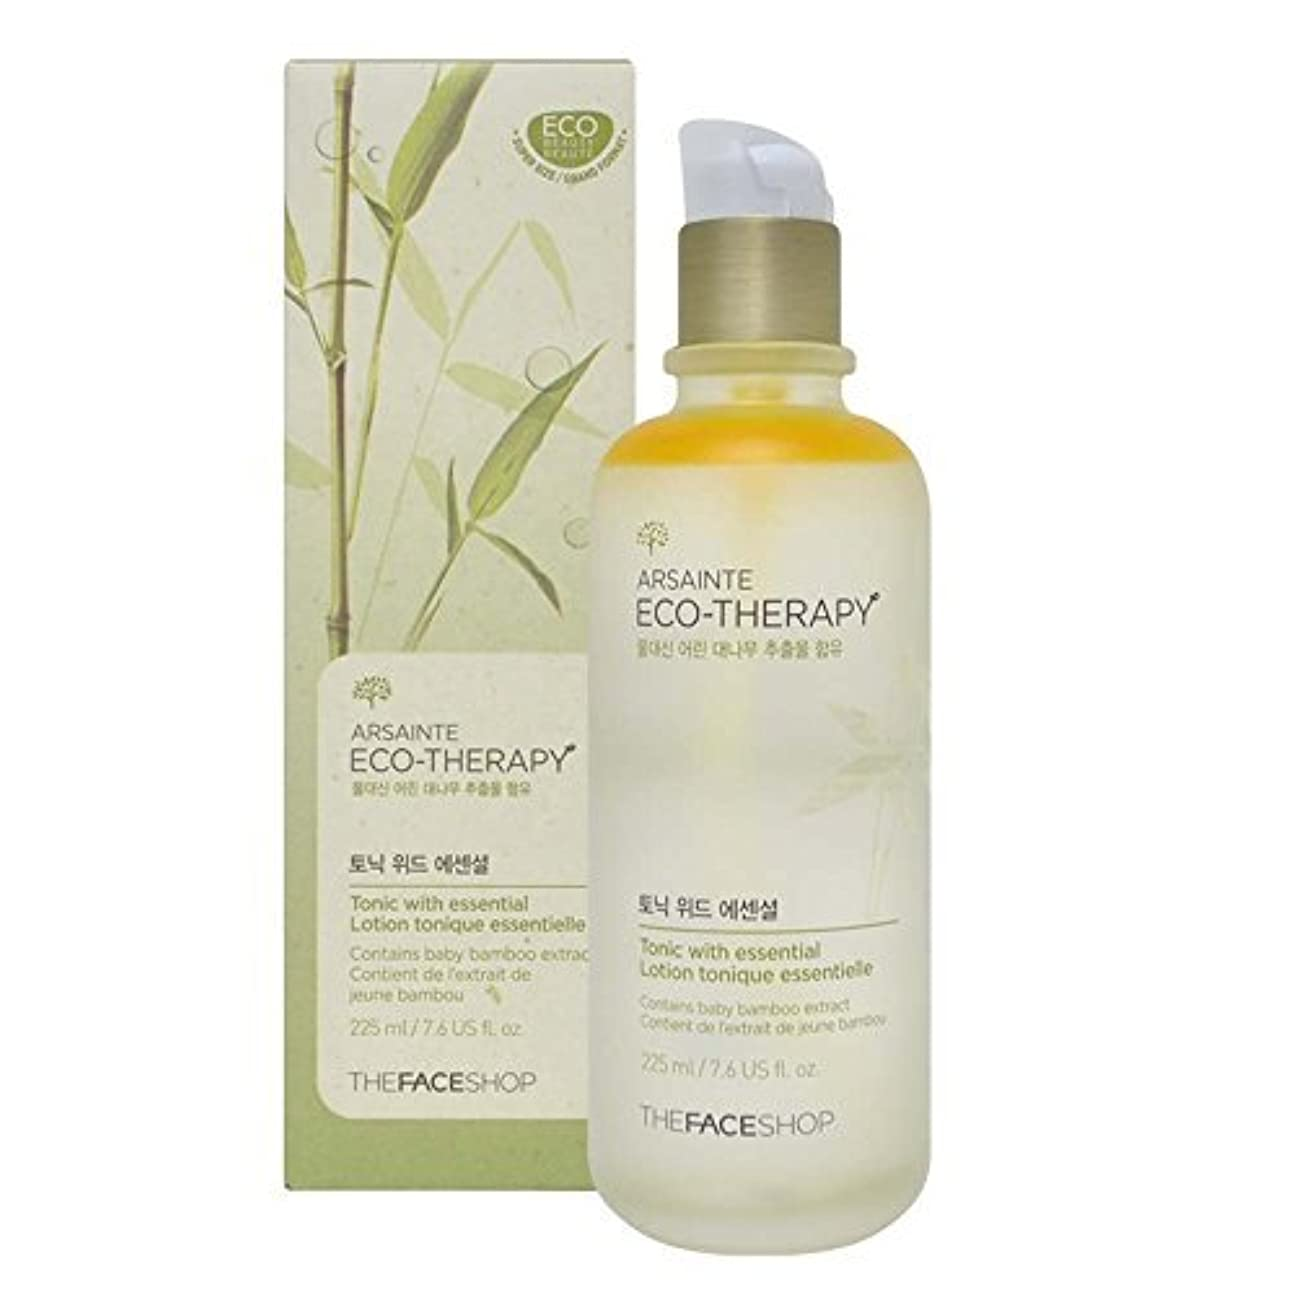 笑い階杖The Face shop Arsainte Ecotheraphy Tonic with essential Big Size 225ml [並行輸入品]